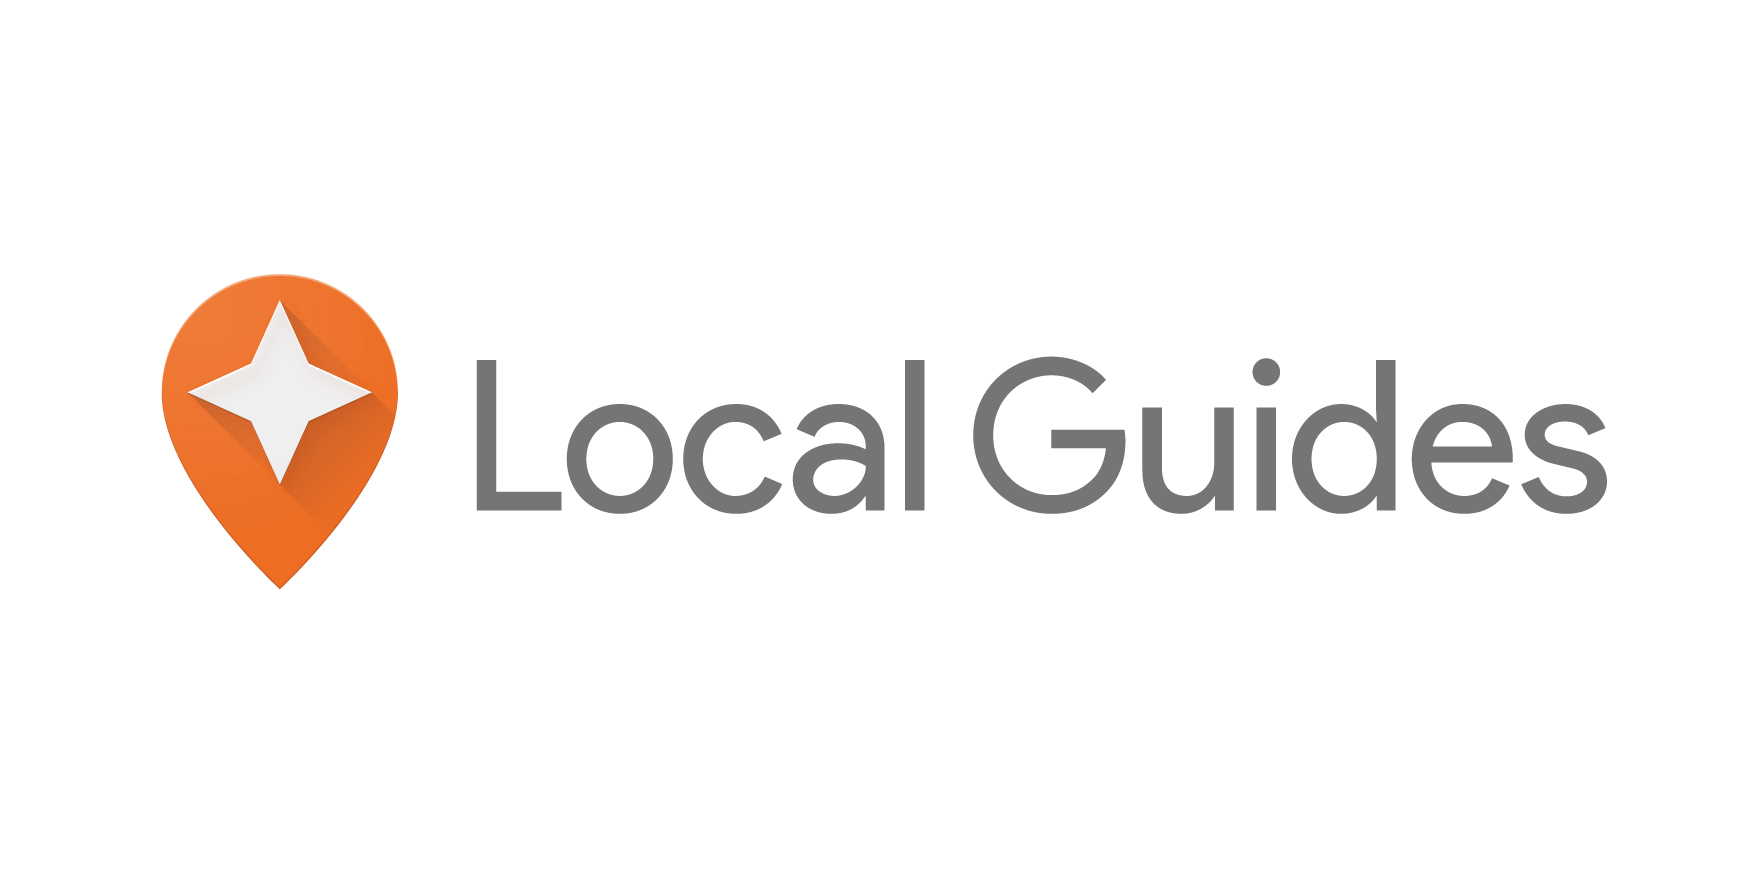 Google Local Guides can score $5 off movie tickets with